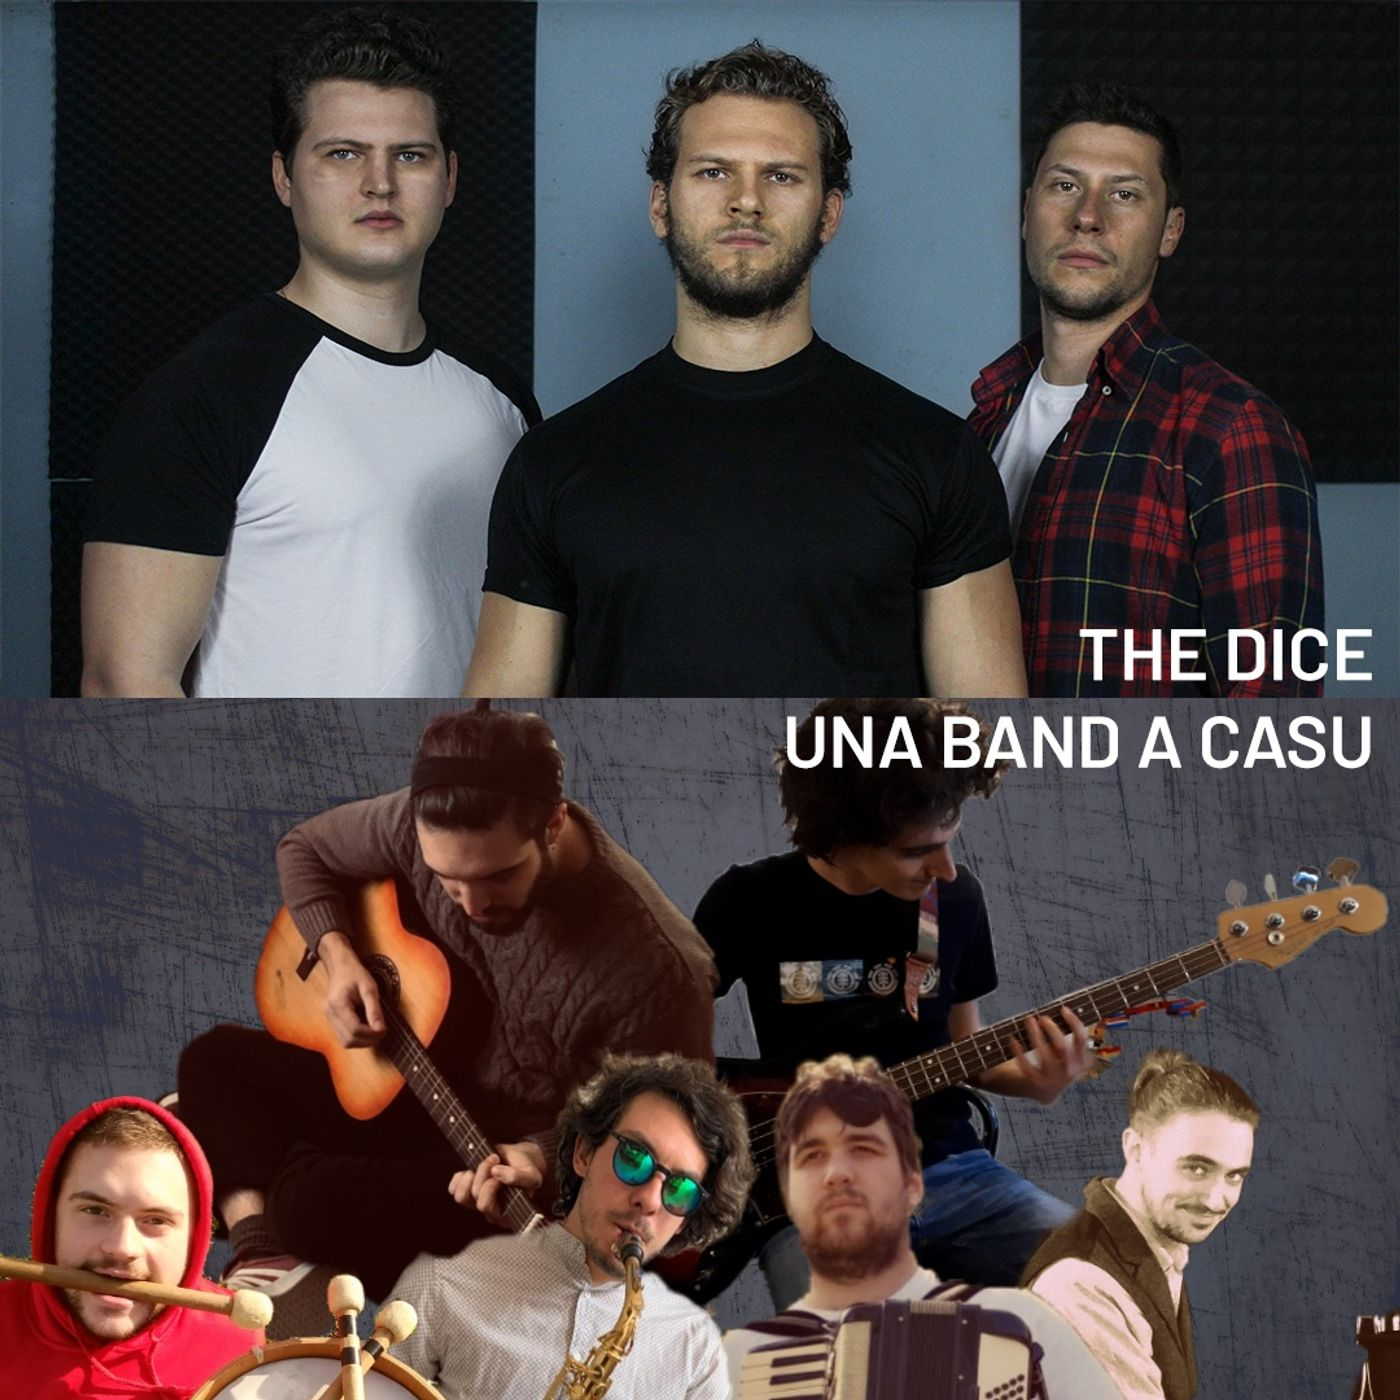 Risorse da quarantena + intervista a The Dice & Una Band a CASU - Karmadillo - s03e27